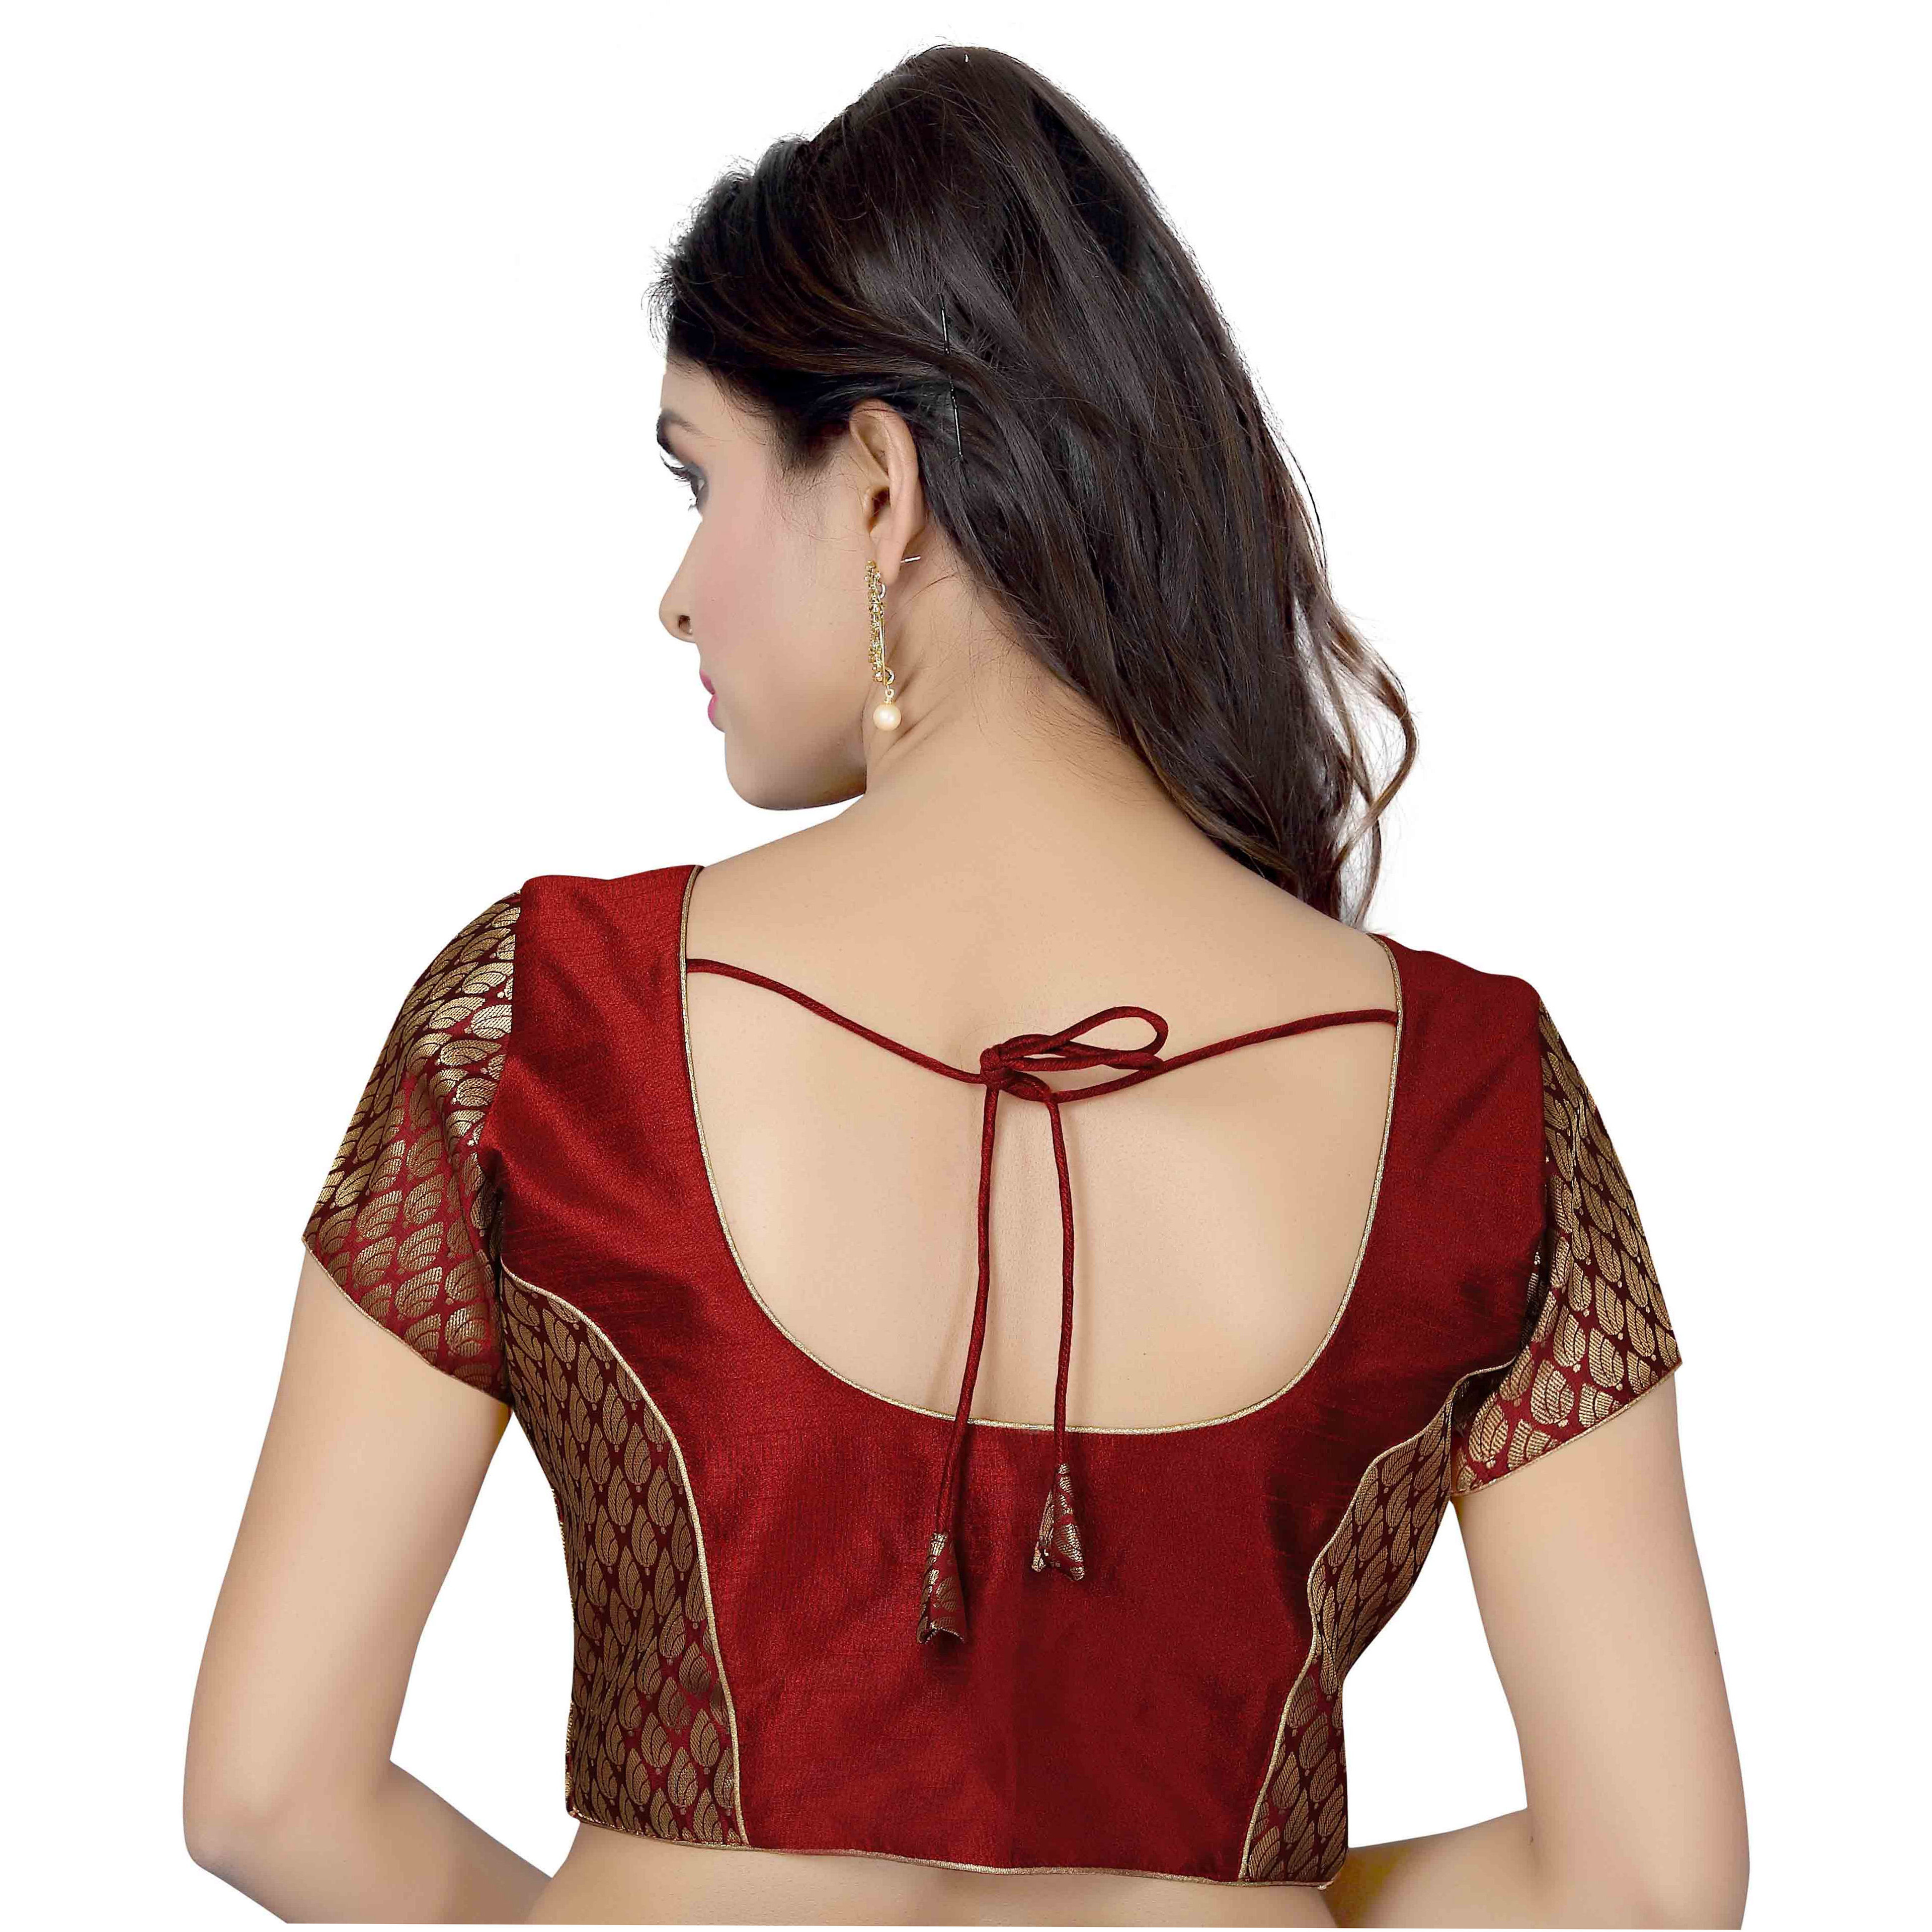 TrendyFashionMall Ready Made Designer Art Silk Saree Blouse Collection! (Color:MAROON, Size:X-LARGE - 44)